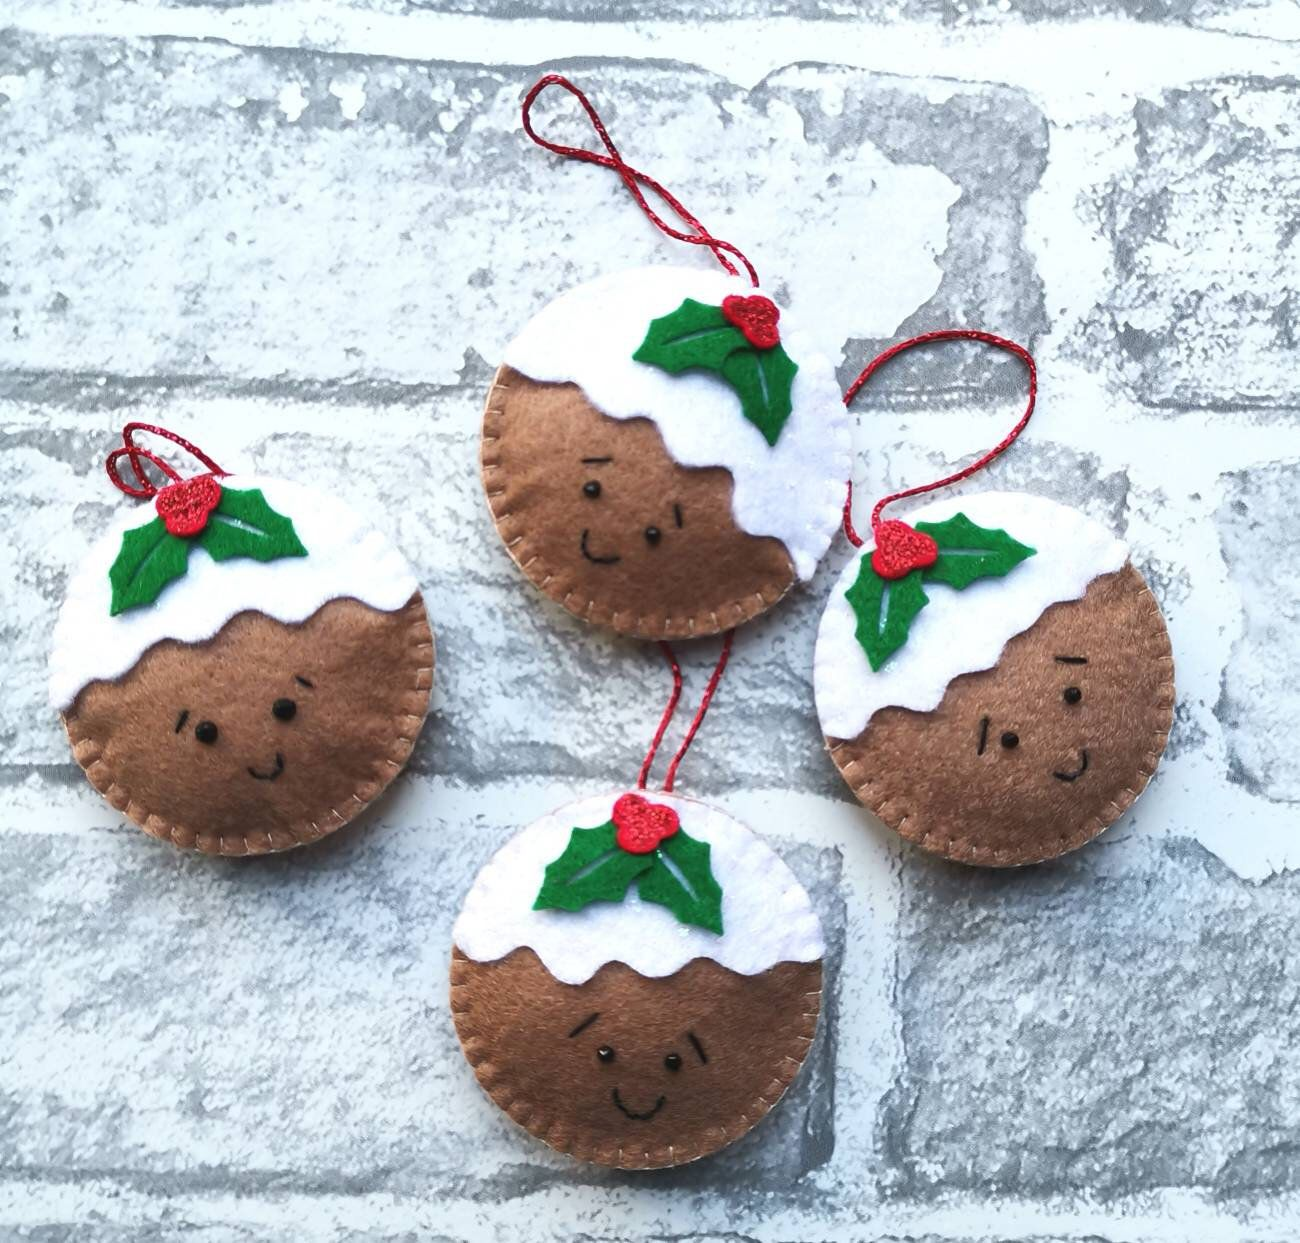 Excited to share this item from my shop: Christmas Pudding Decoration, Christmas Pudding Tree Decoration, Christmas Decorations, Christmas Decor, Christmas Pudding Ornament, Happy